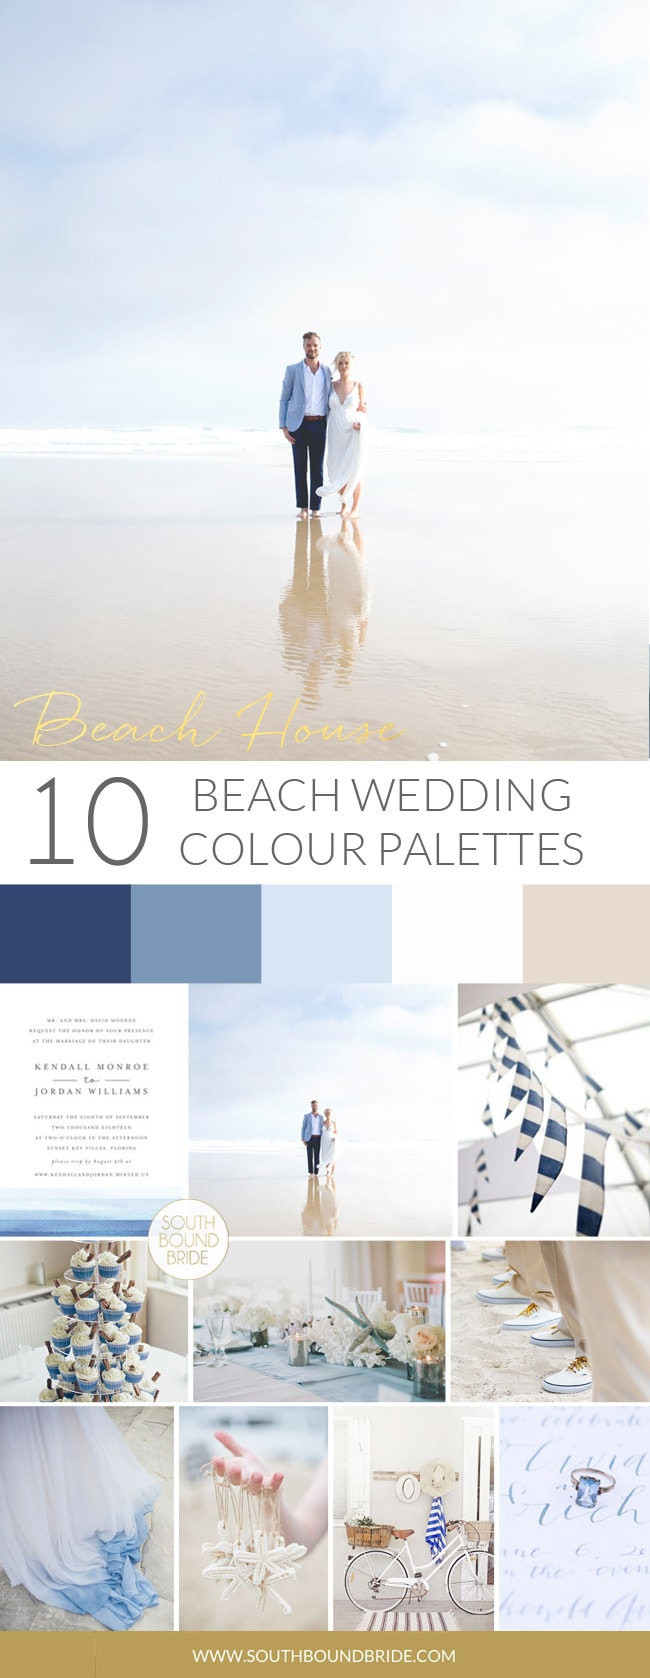 Beach House Wedding Palette